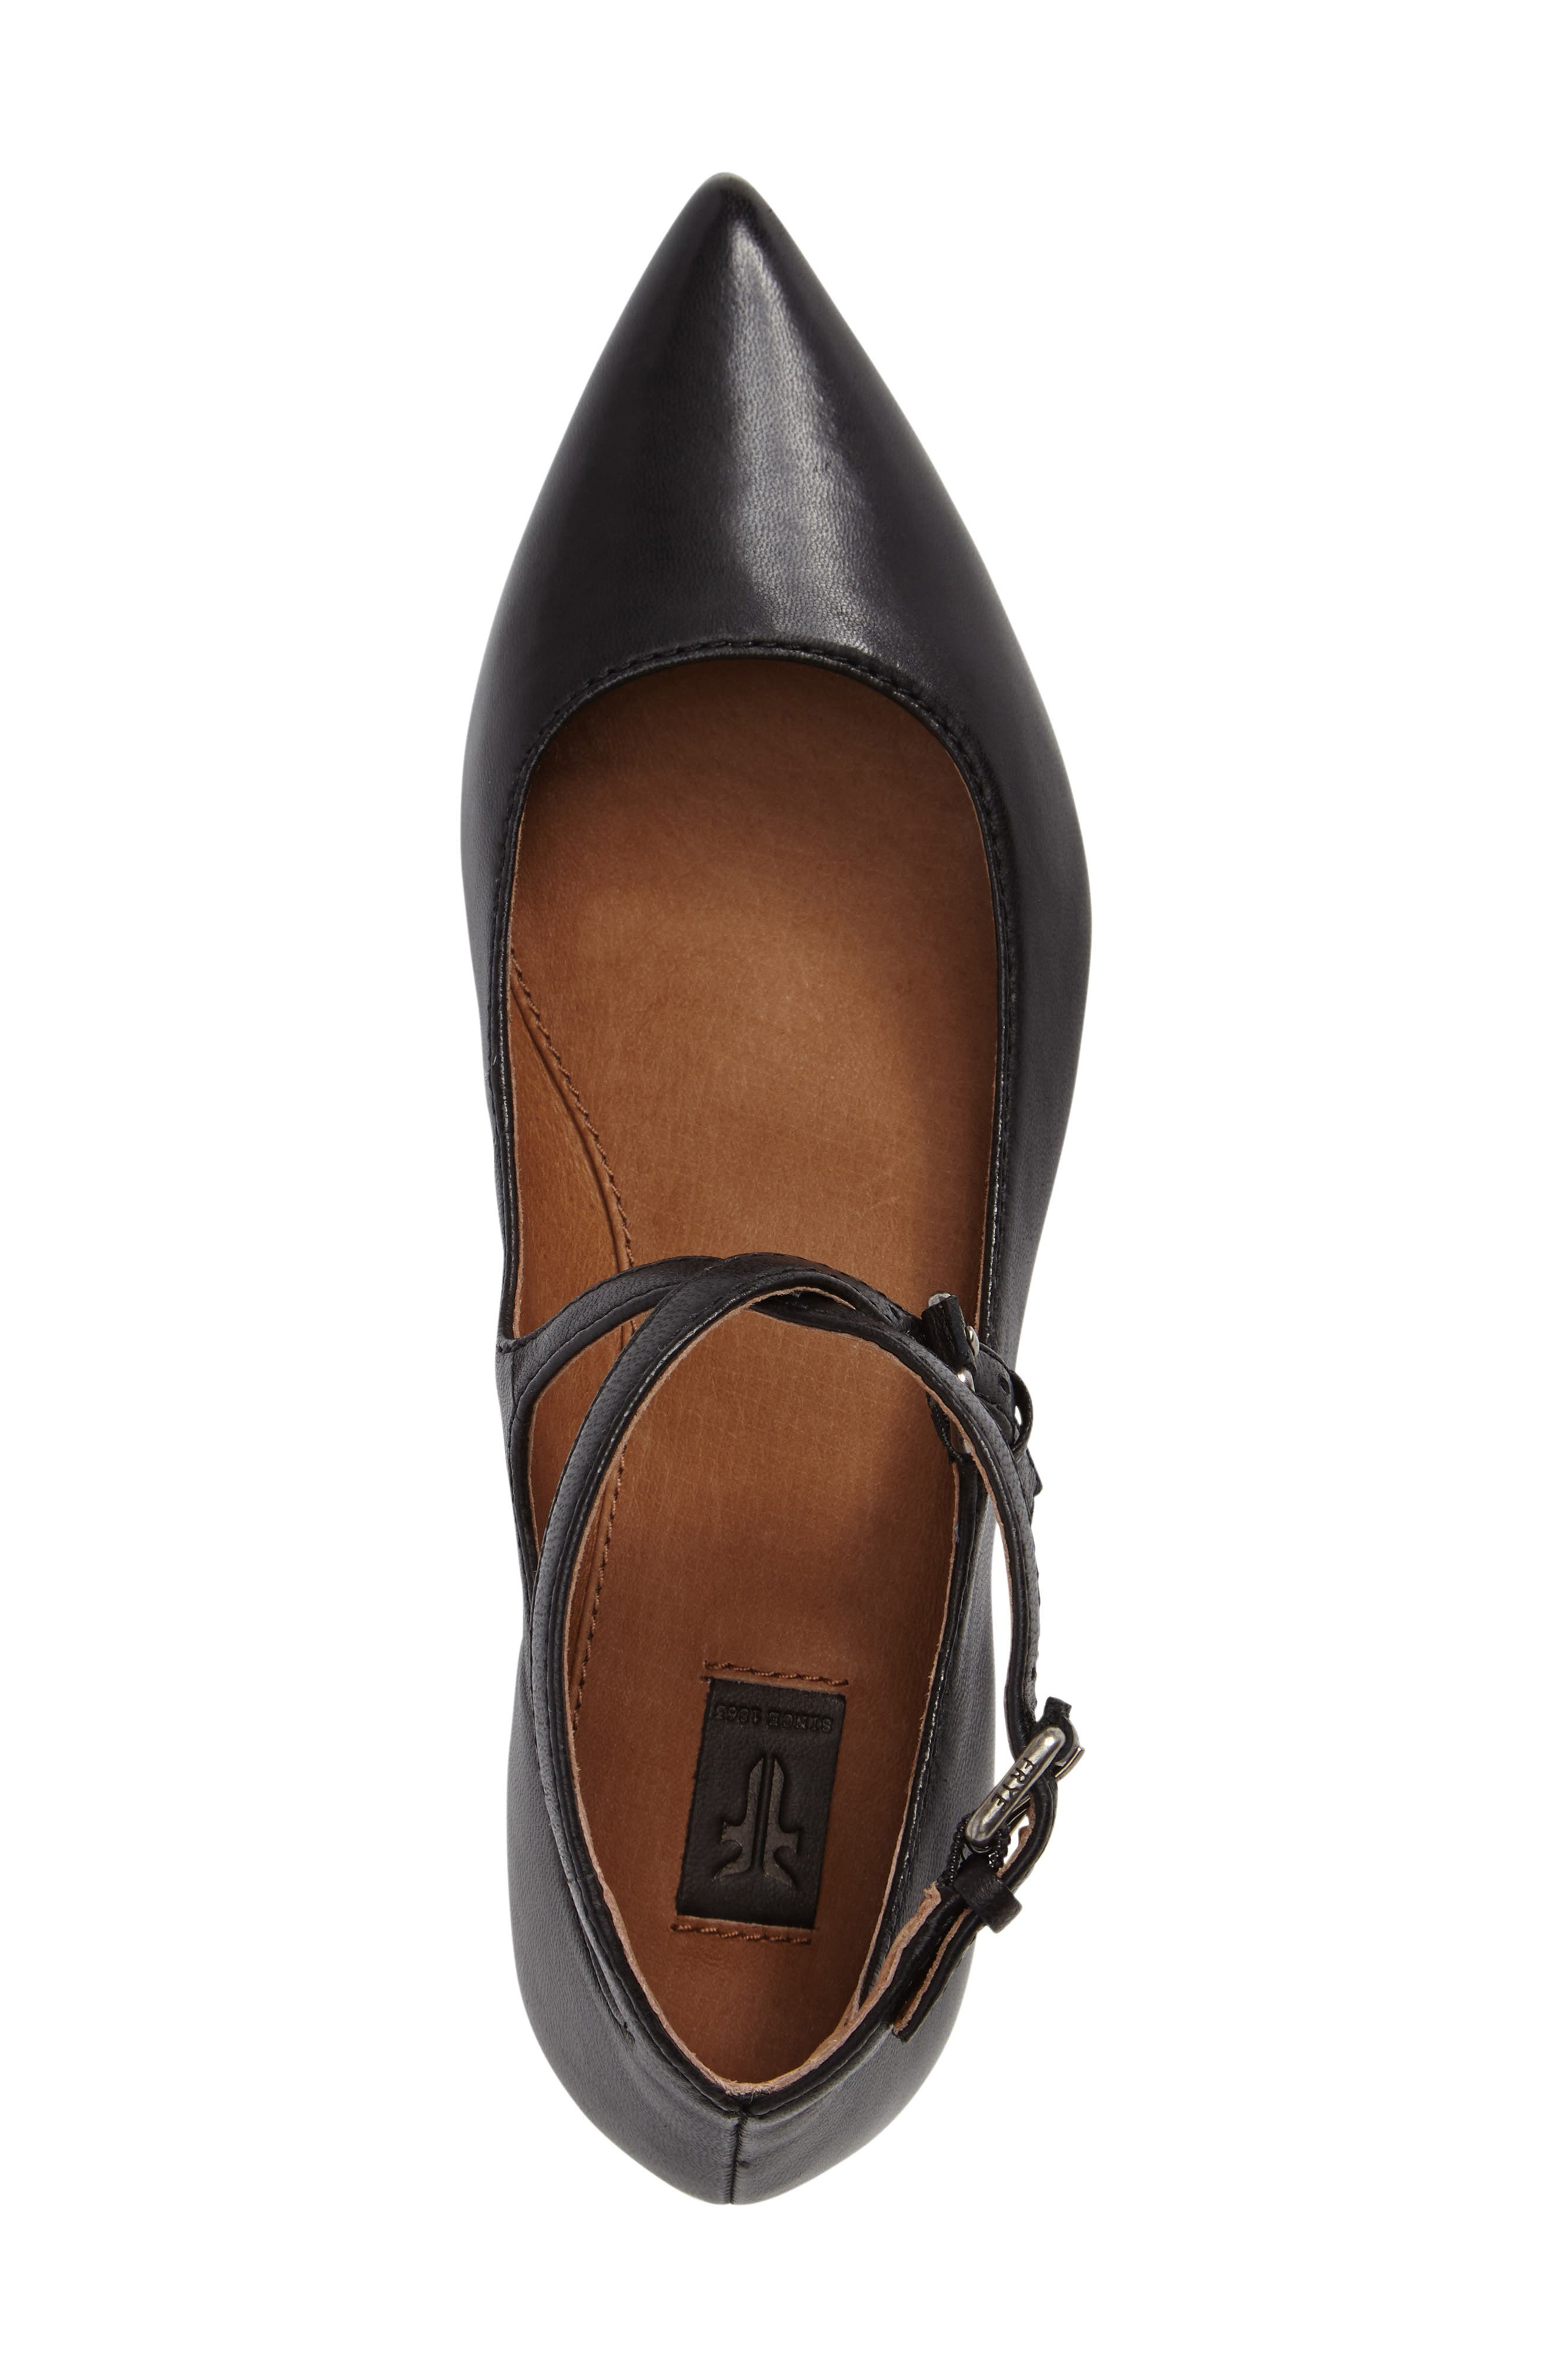 Sienna Cross Ballet Flat,                             Alternate thumbnail 7, color,